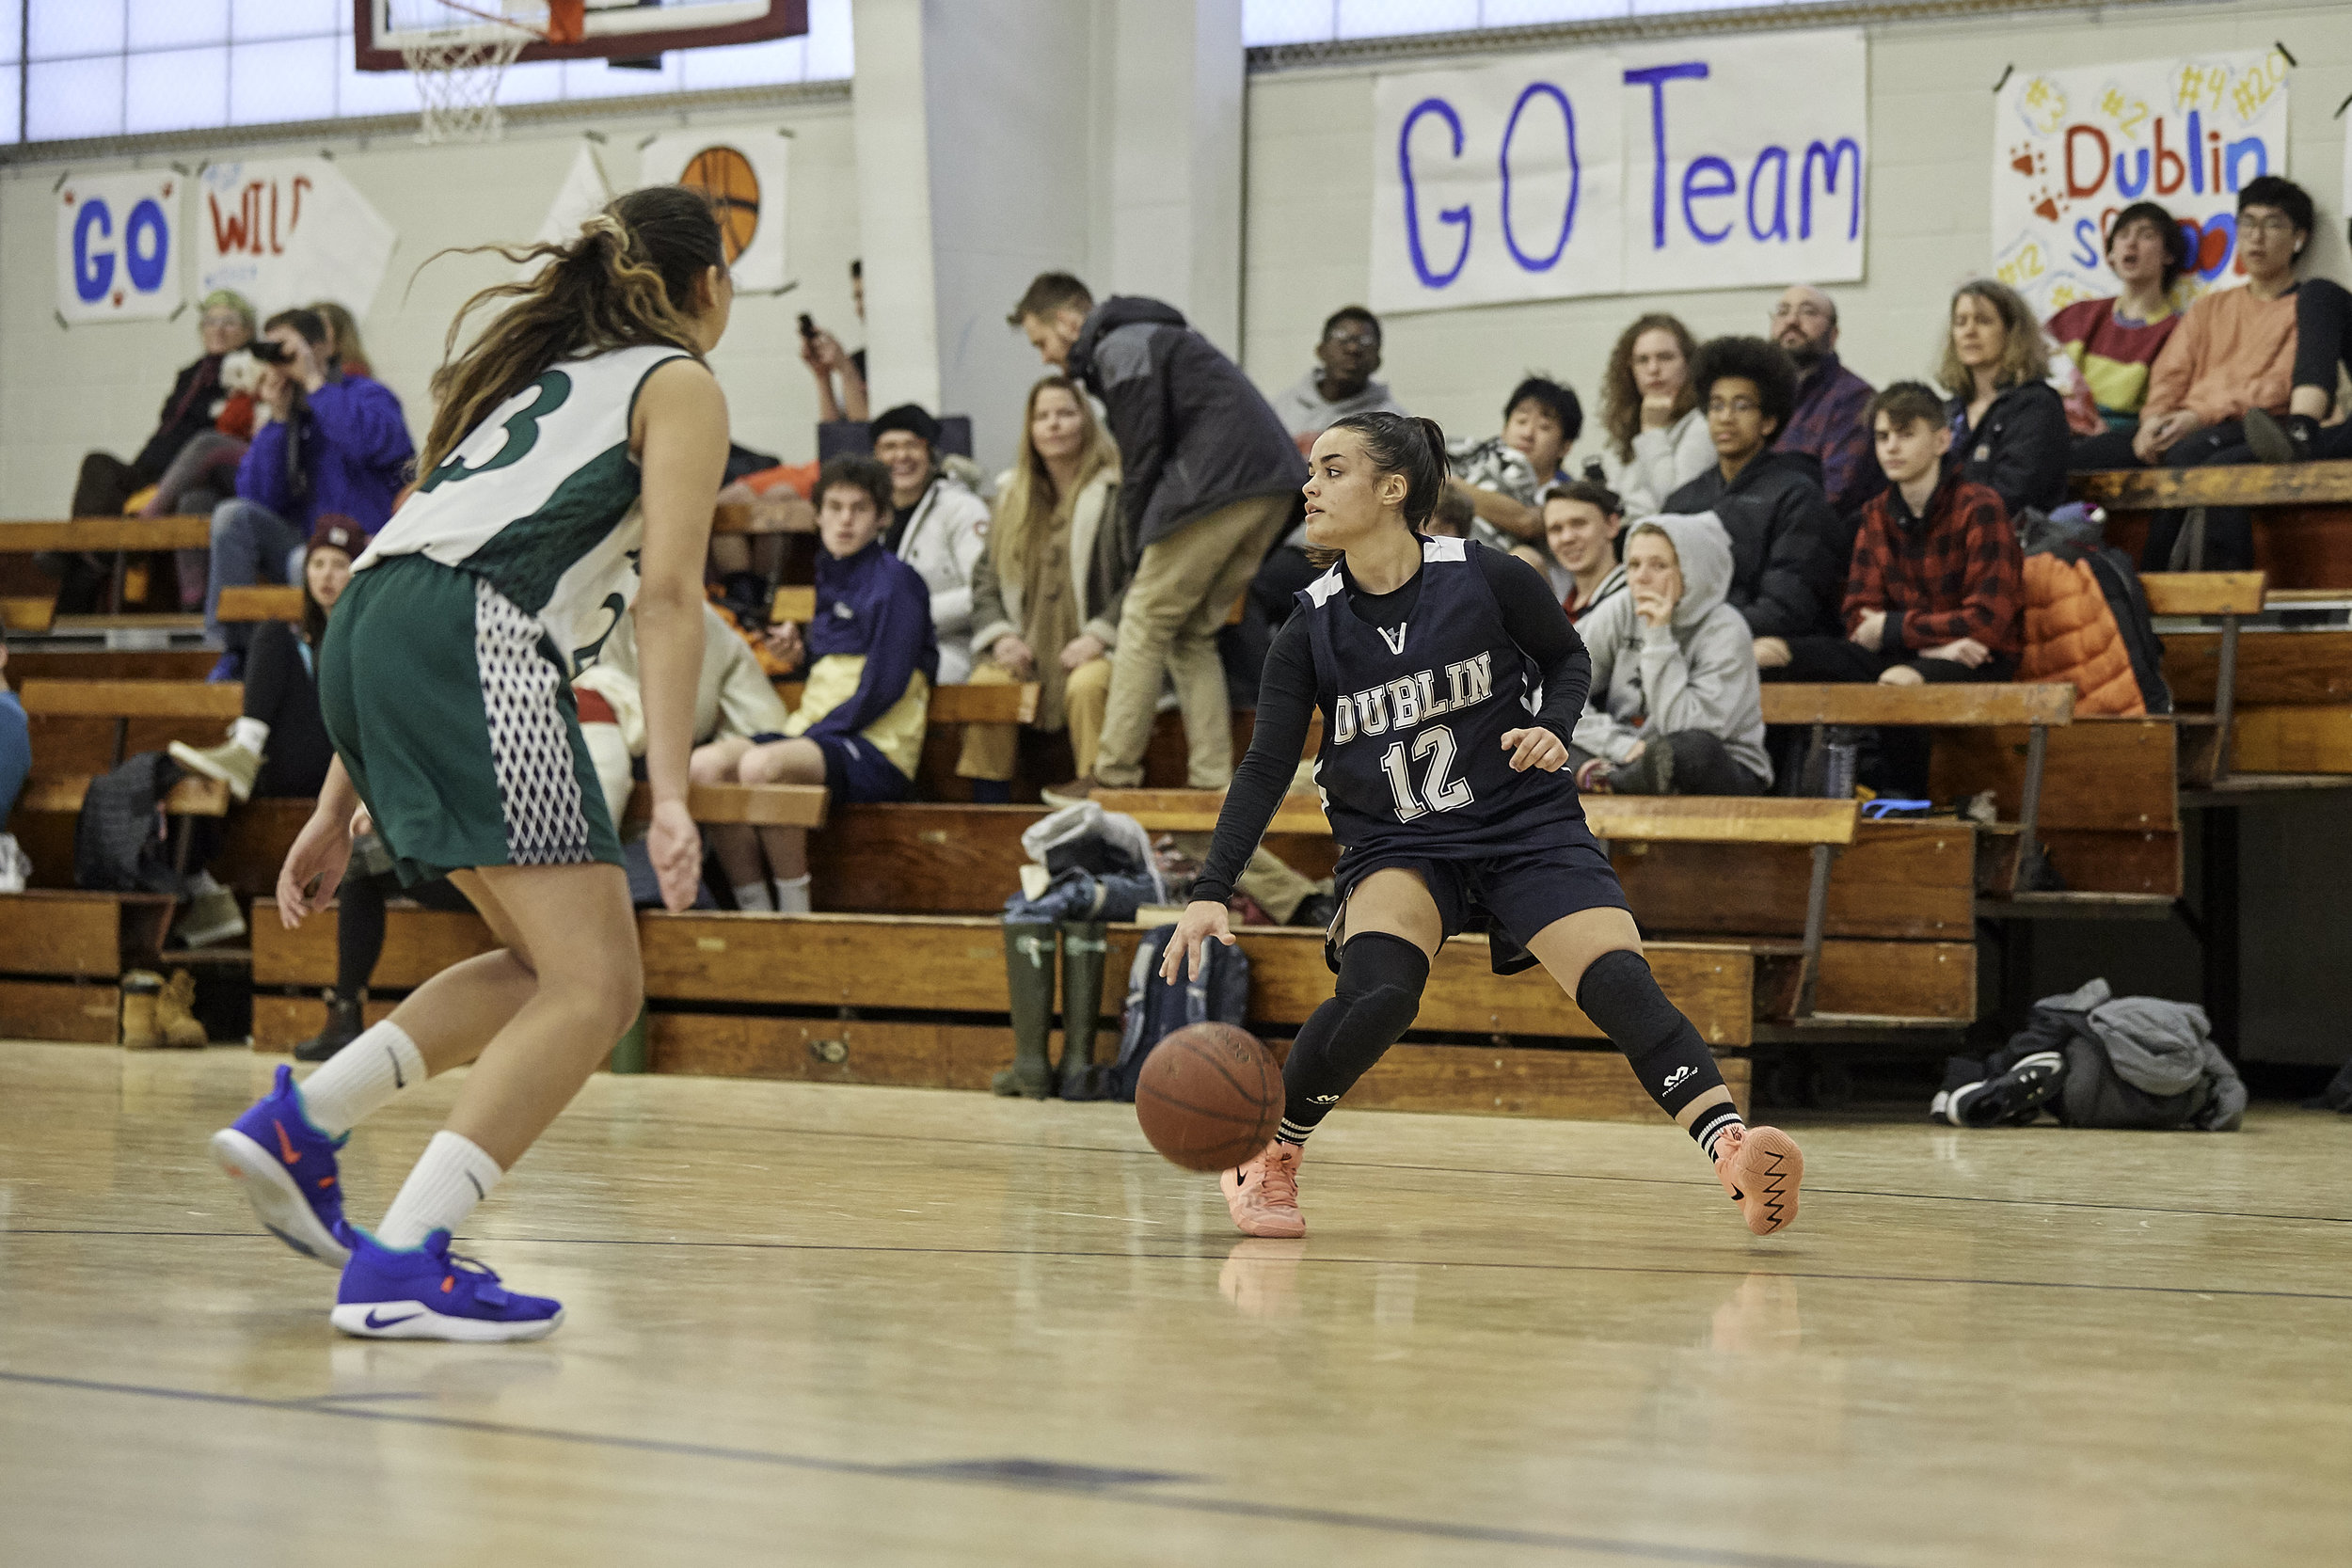 Basketball vs Putney School, February 9, 2019 - 167121.jpg